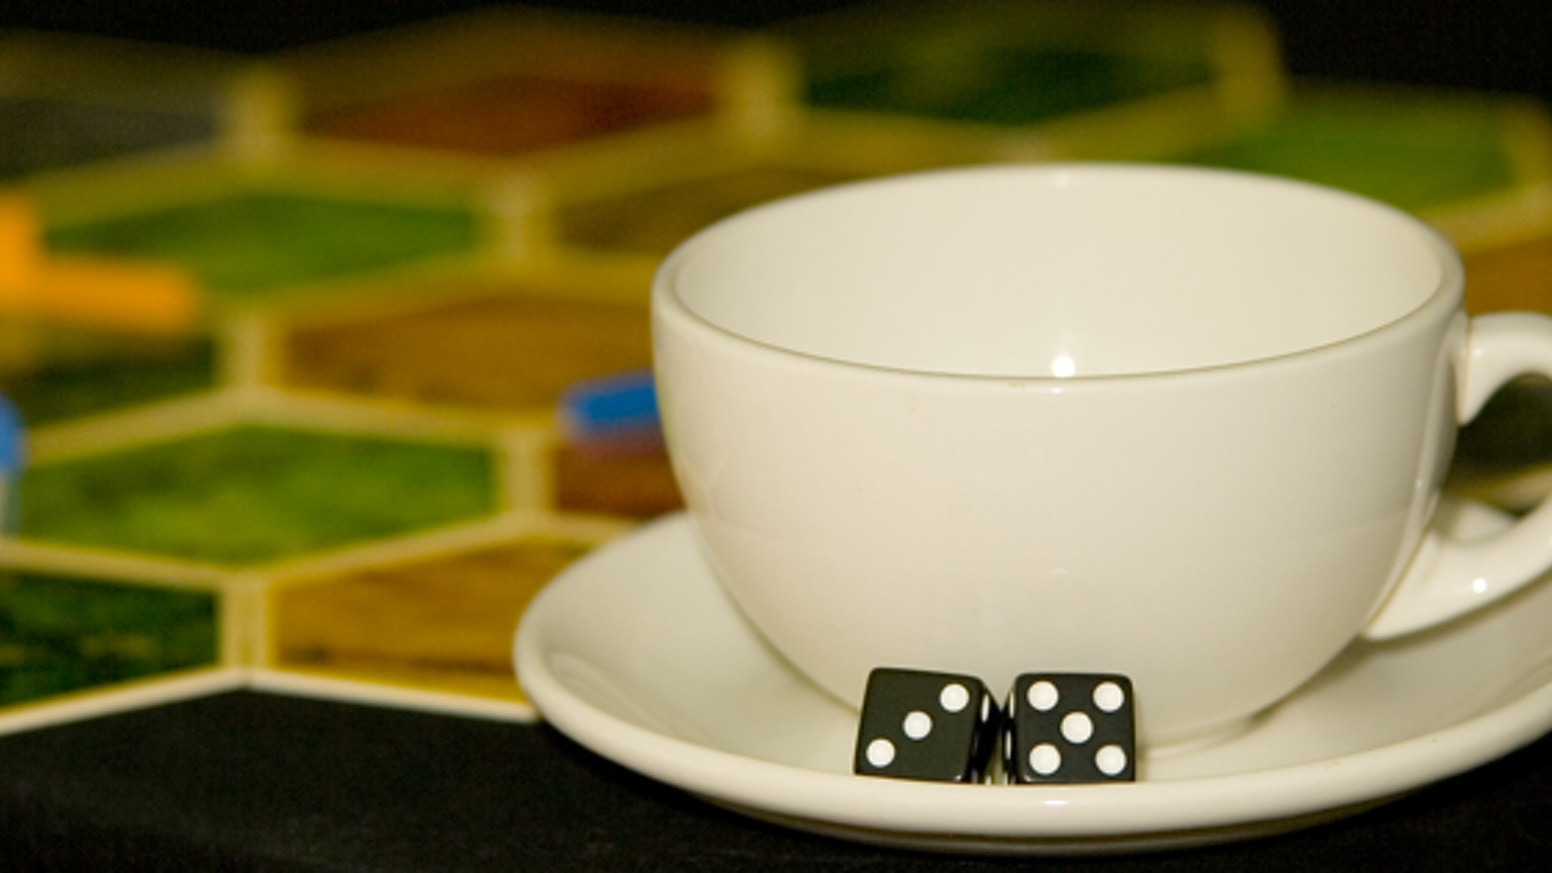 Pledge your support for a Board game café in the heart of Nottingham, A friendly place to relax and play games with friends old and new